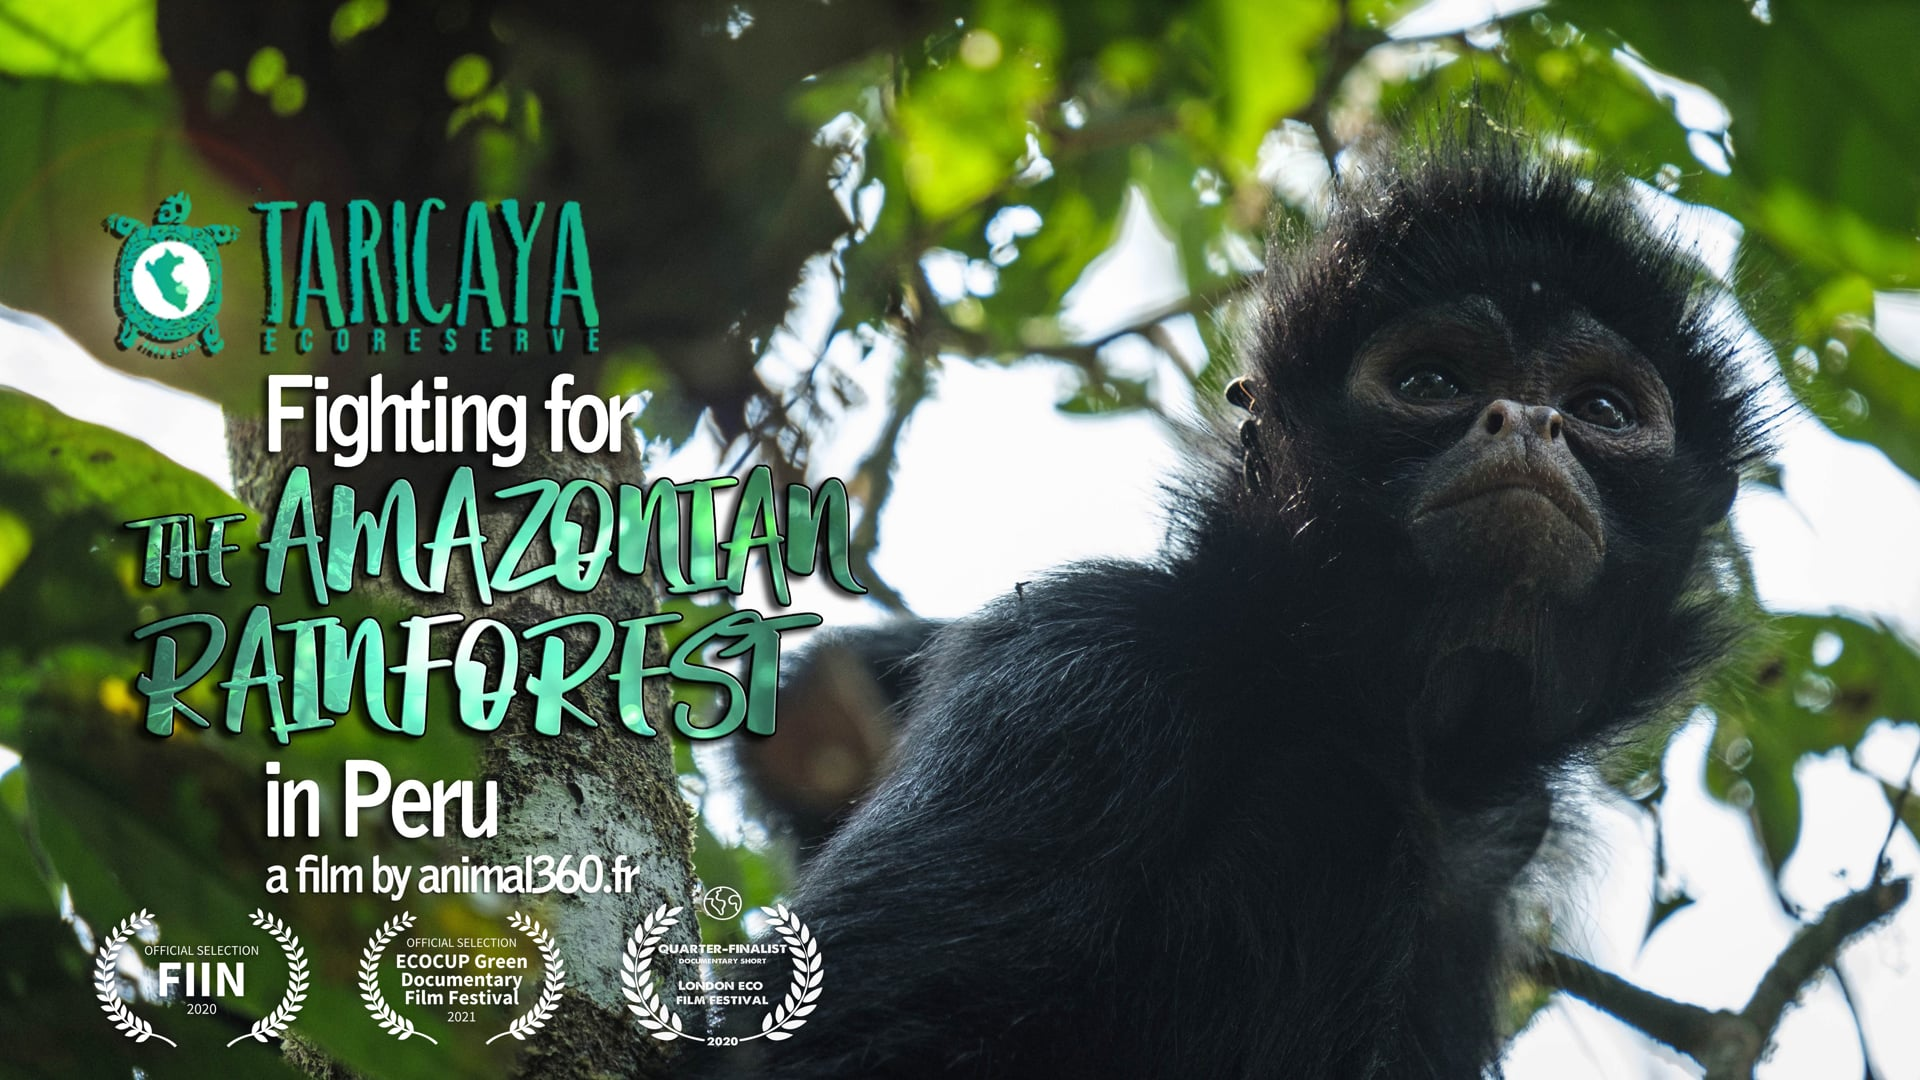 Taricaya ecoreserve, fighting for the amazonian rainforest in Peru